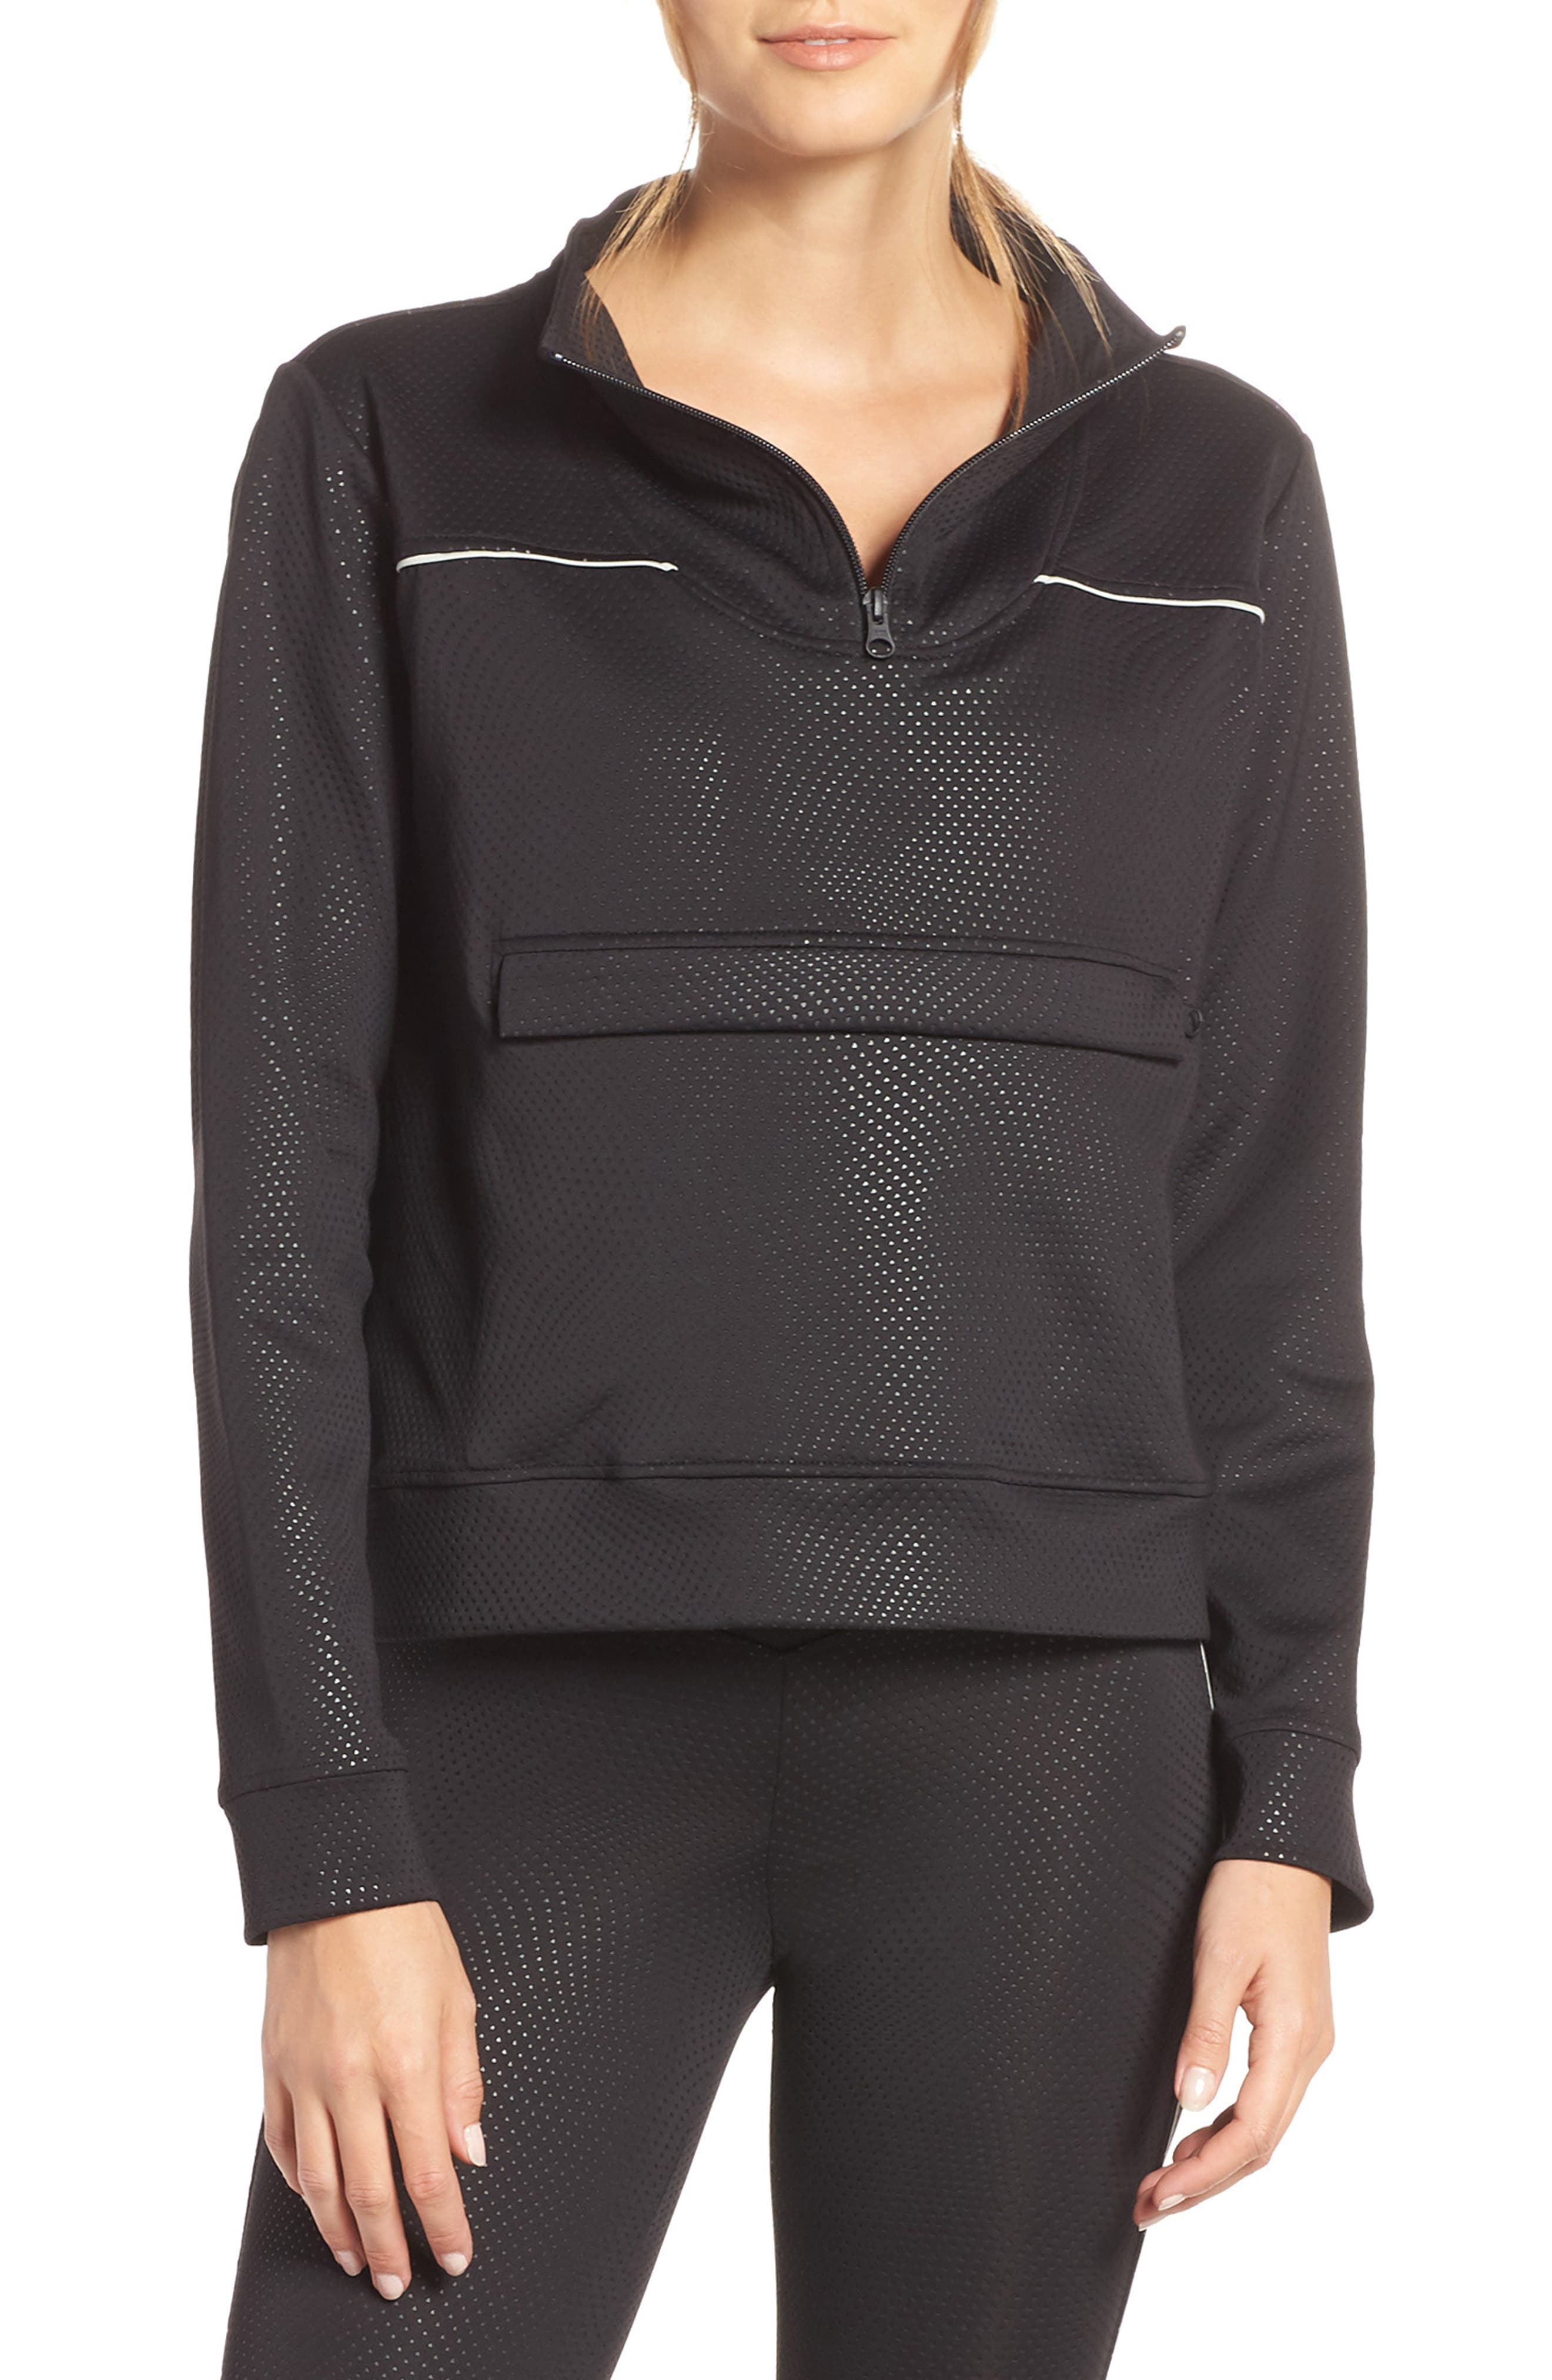 Kai Etch Half-Zip Sweatshirt,                         Main,                         color, 001